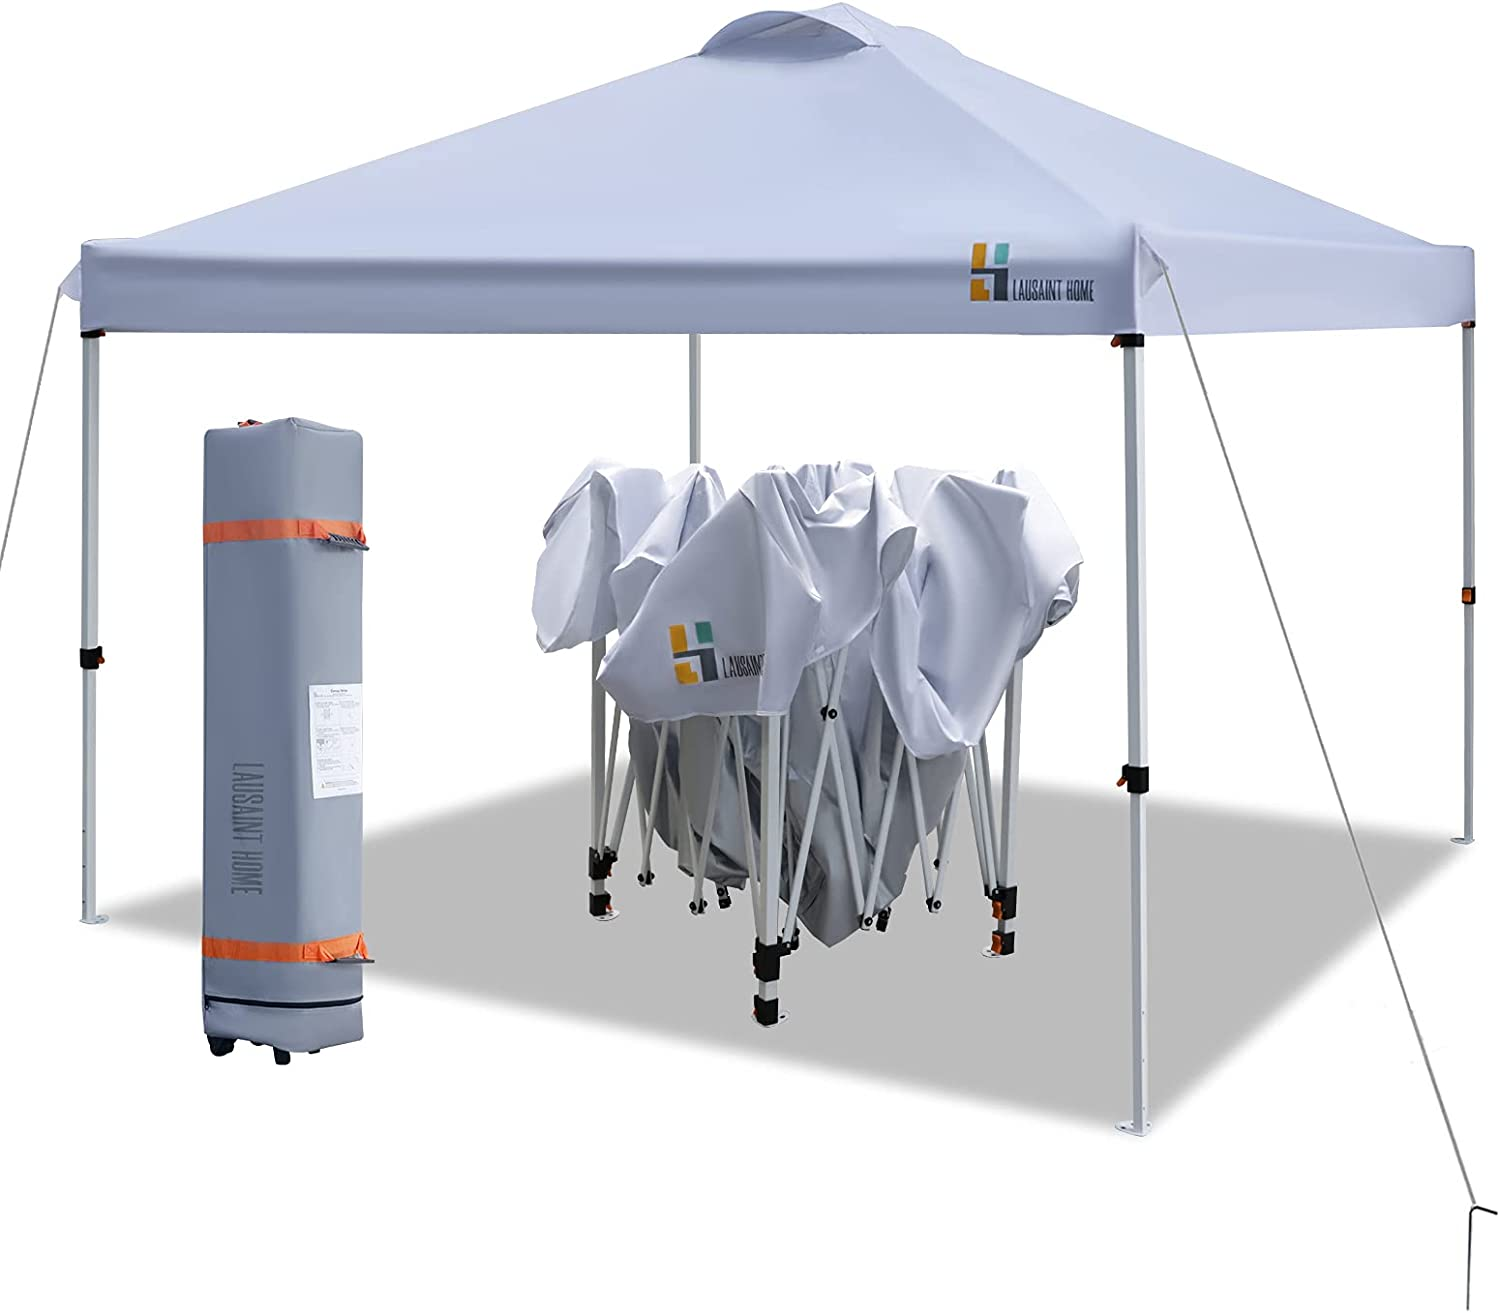 LAUSAINT HOME 10'x10' Pop Up Canopy,Portable Folding Instant Can